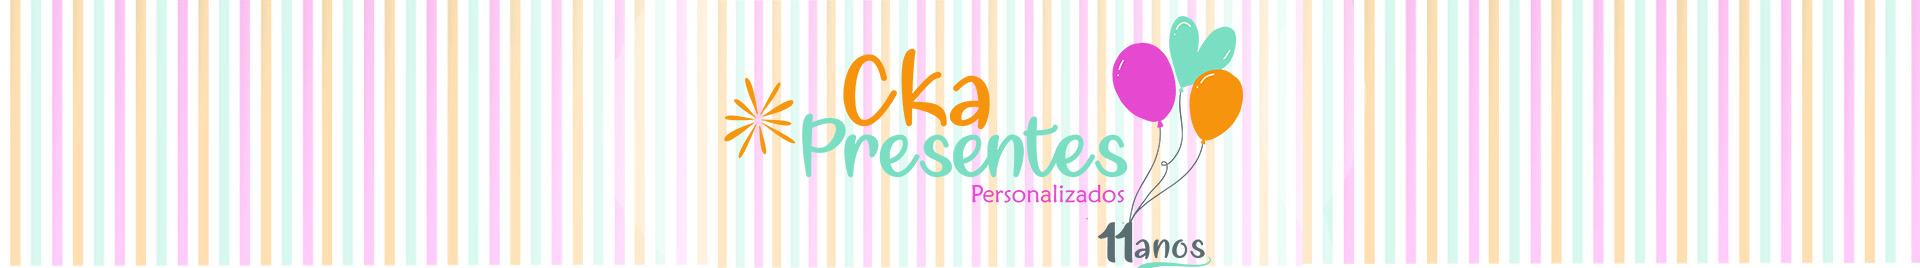 Cka Presentes 